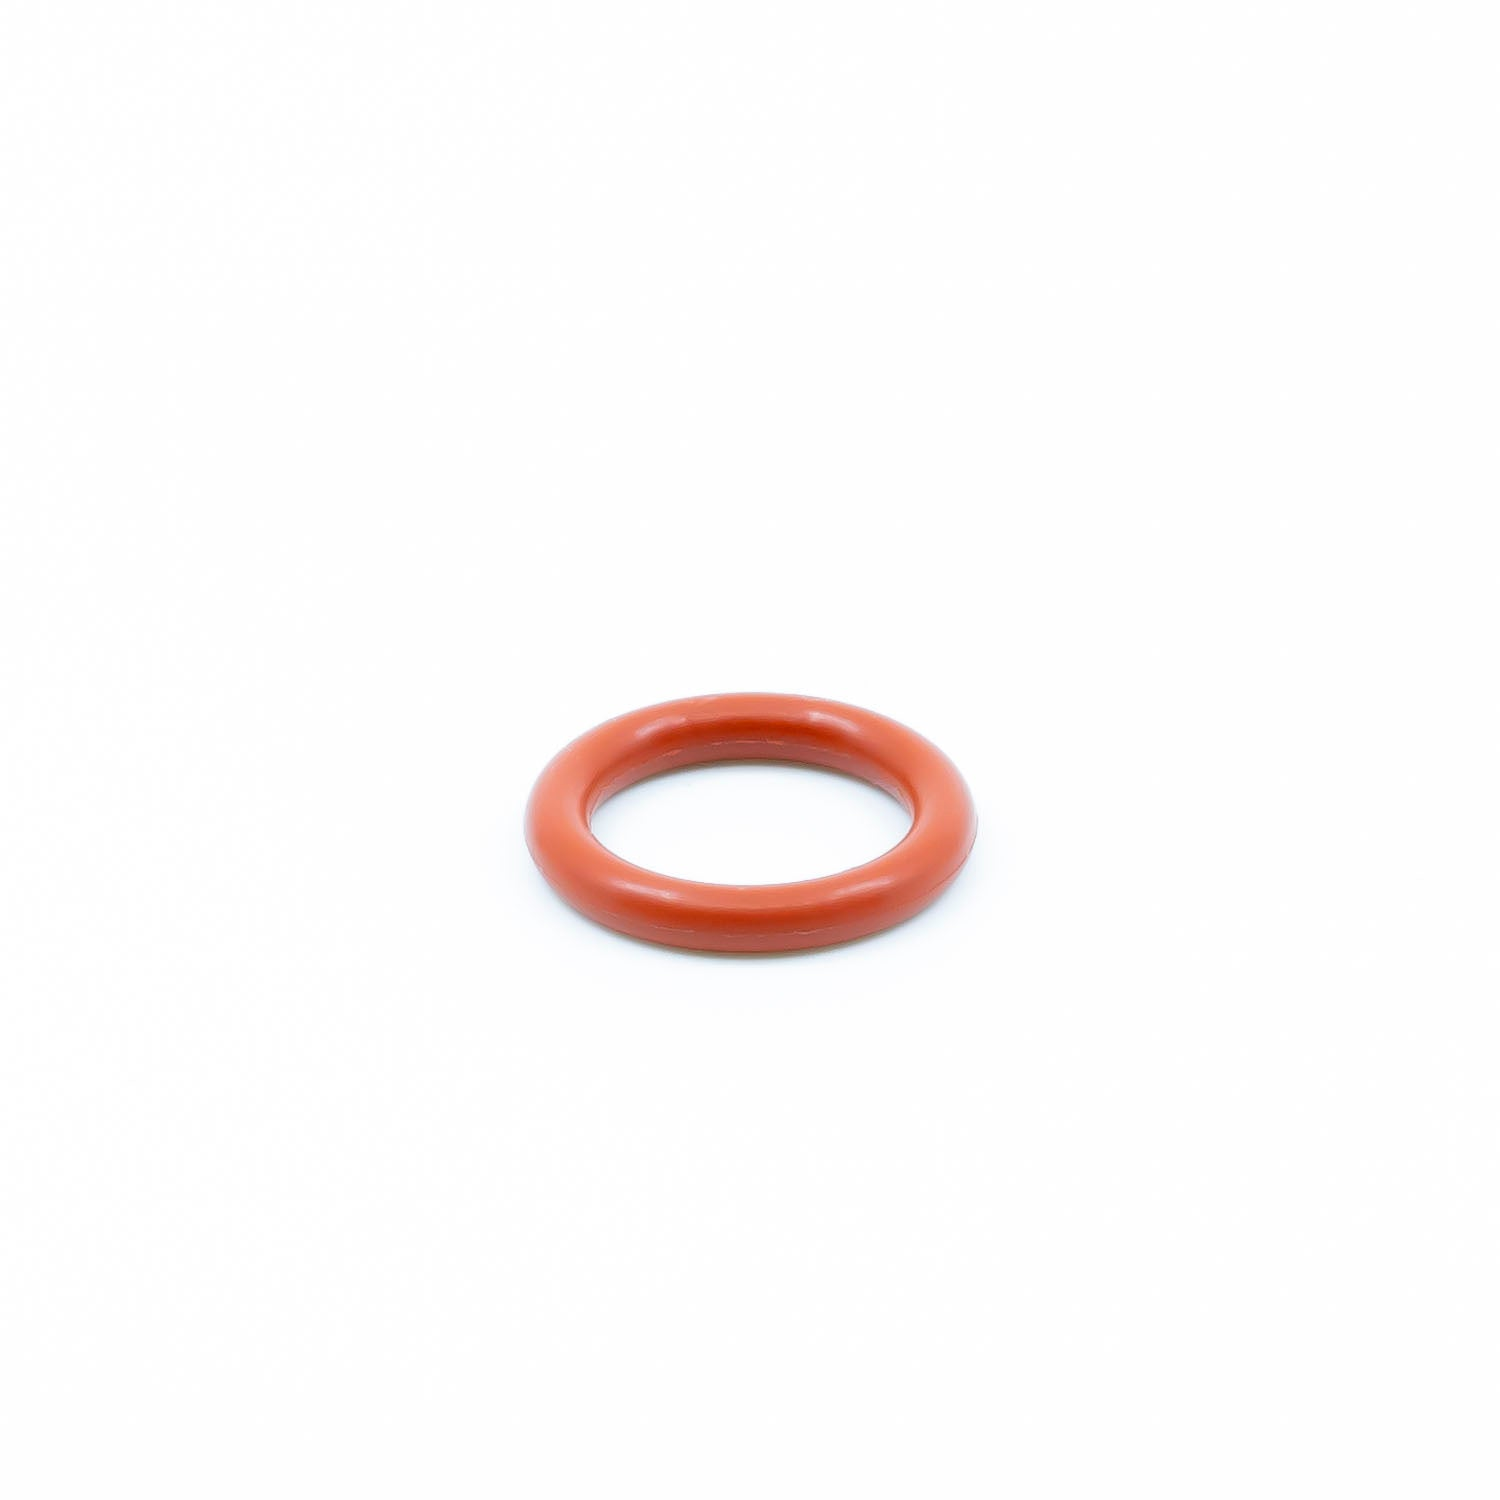 Oring - Red - for Stem Lower Seal